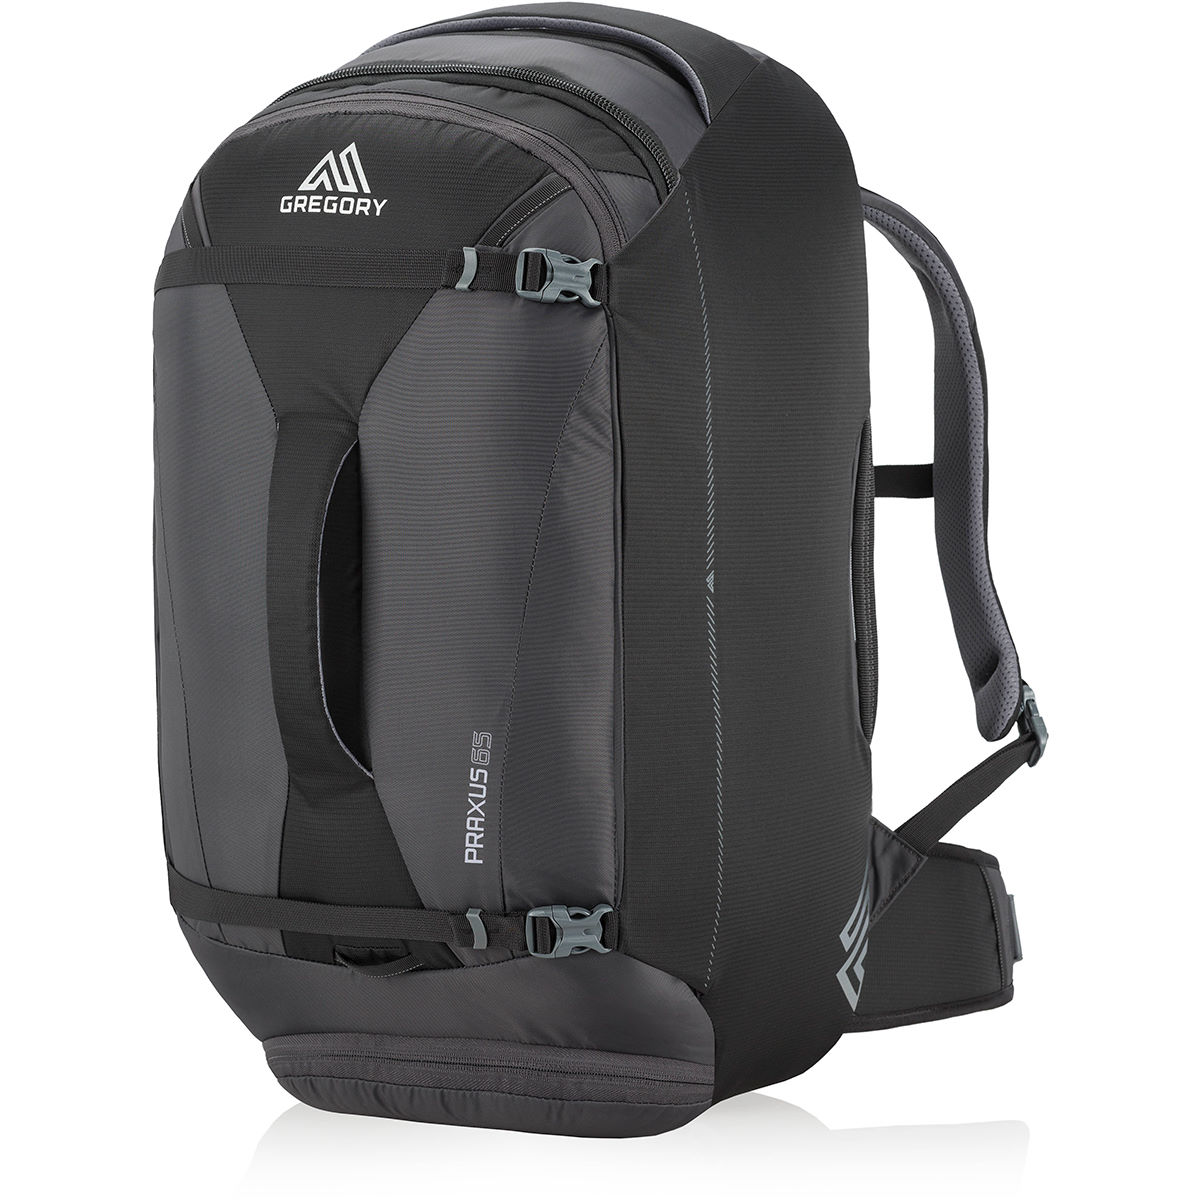 Gregory Praxus 65 Backpack - Mochilas